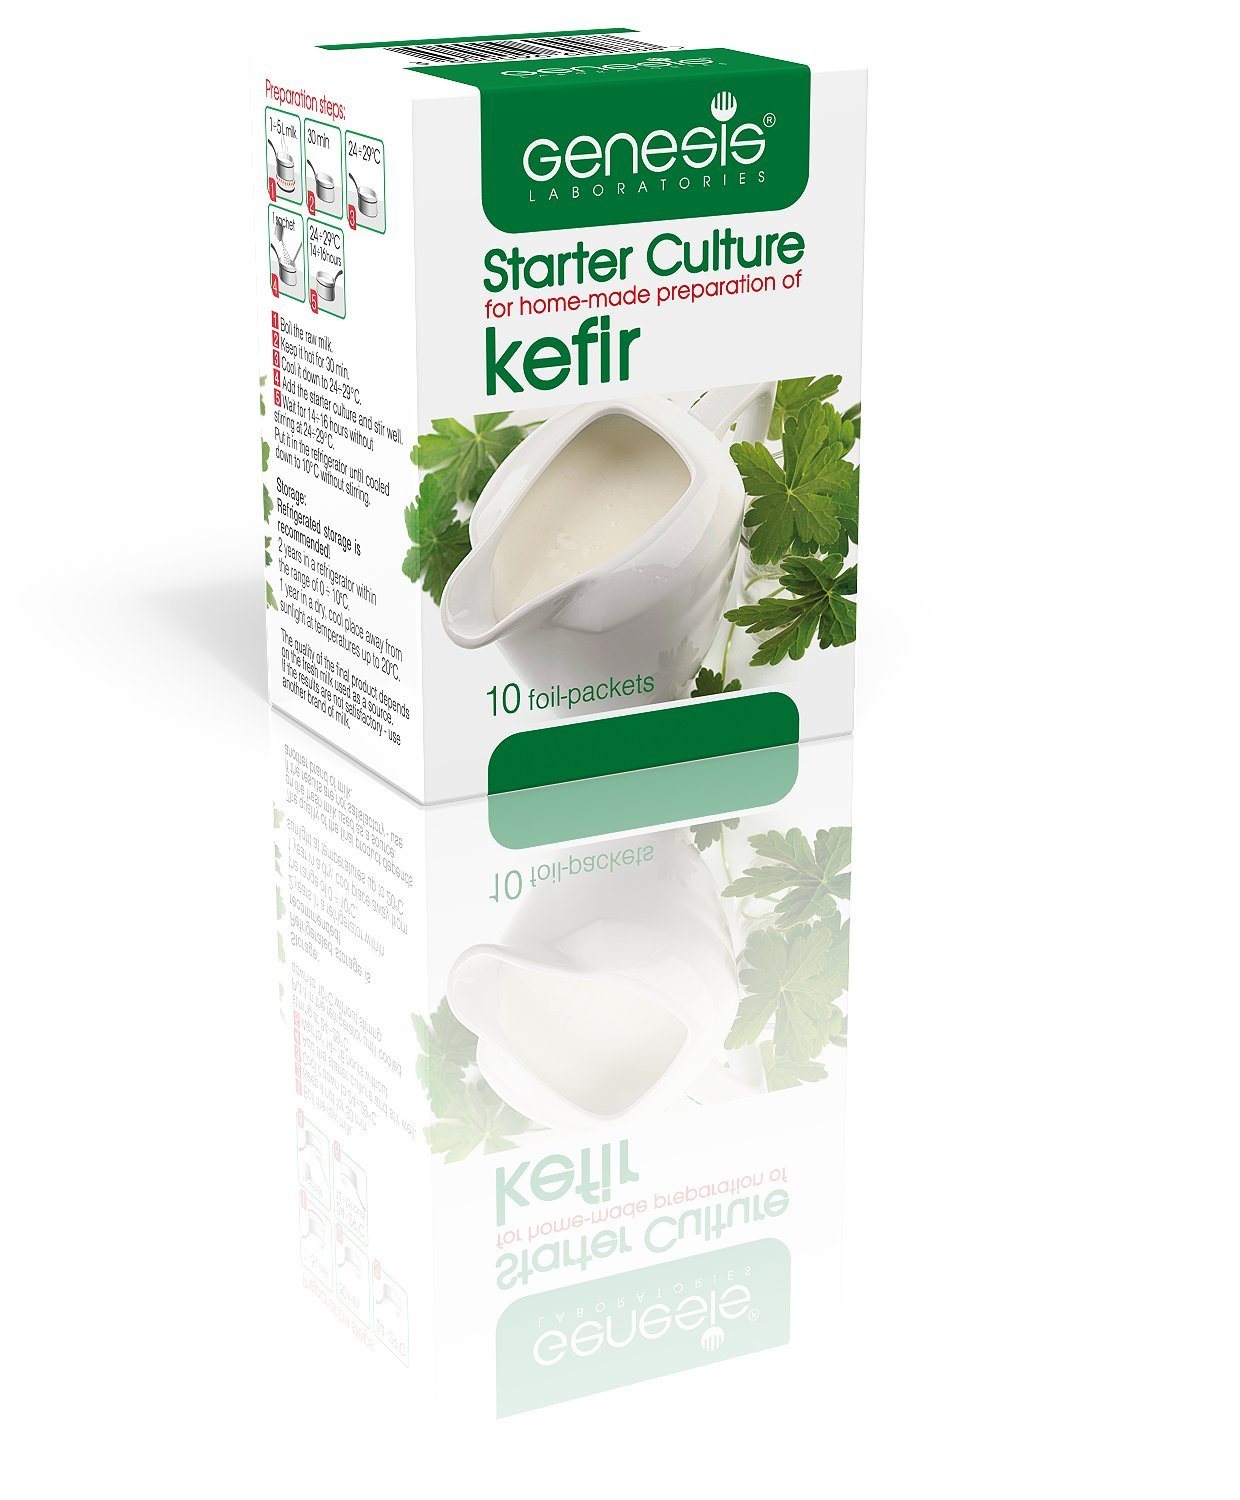 Genesis Starter Culture for home-made preparation of Kefir - up to 50 liters